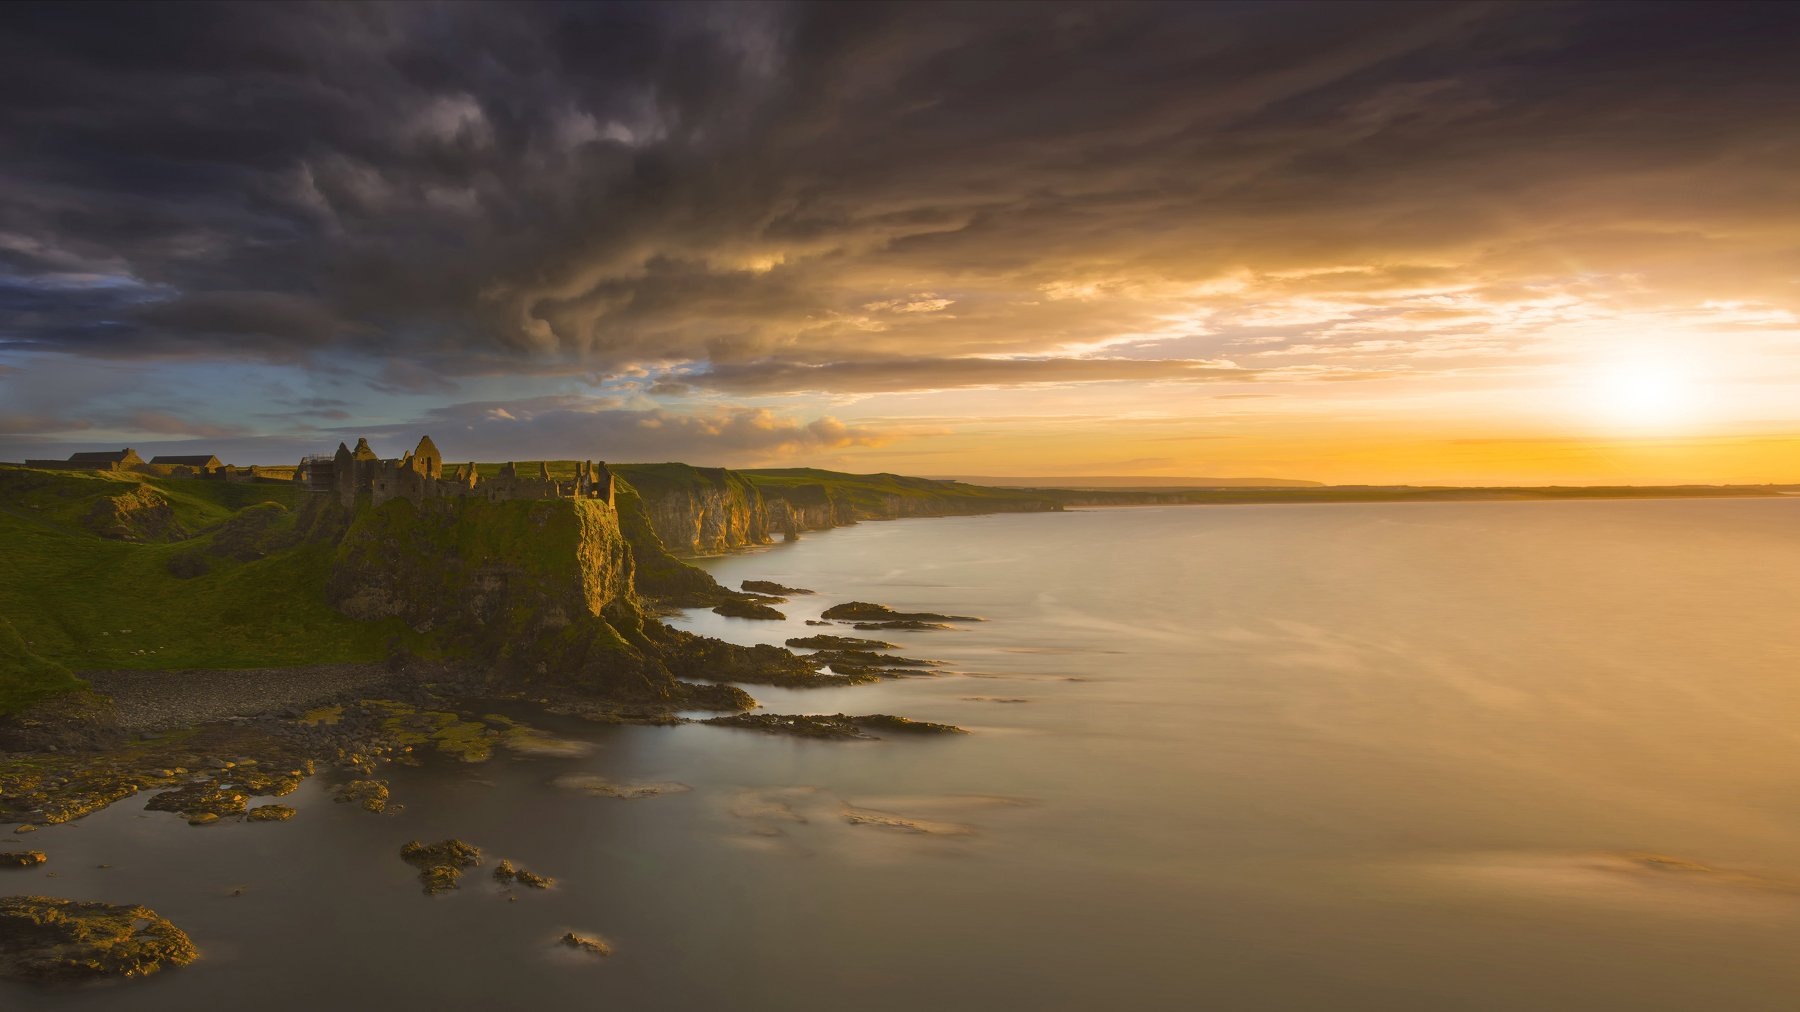 Northern ireland photography competition